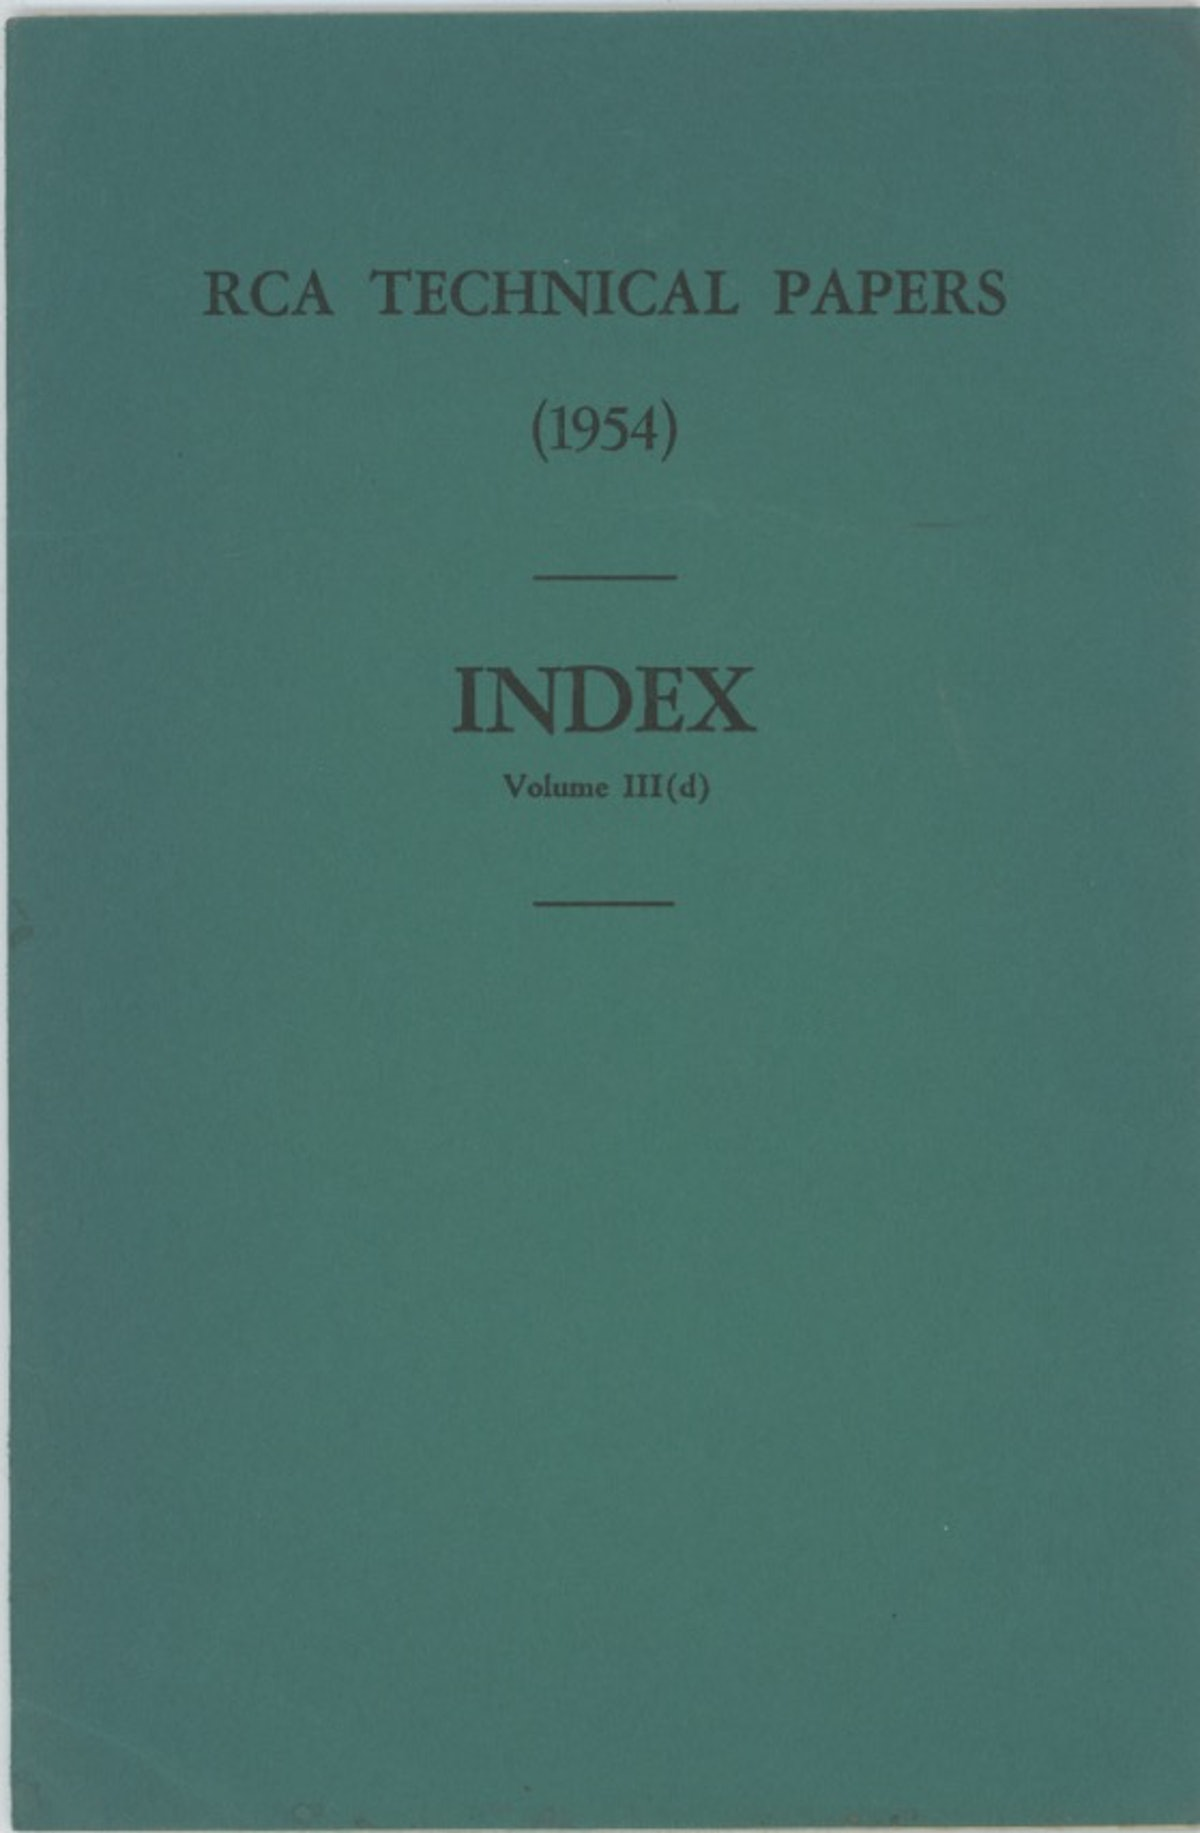 RCA Technical Papers Index Volume III (d)